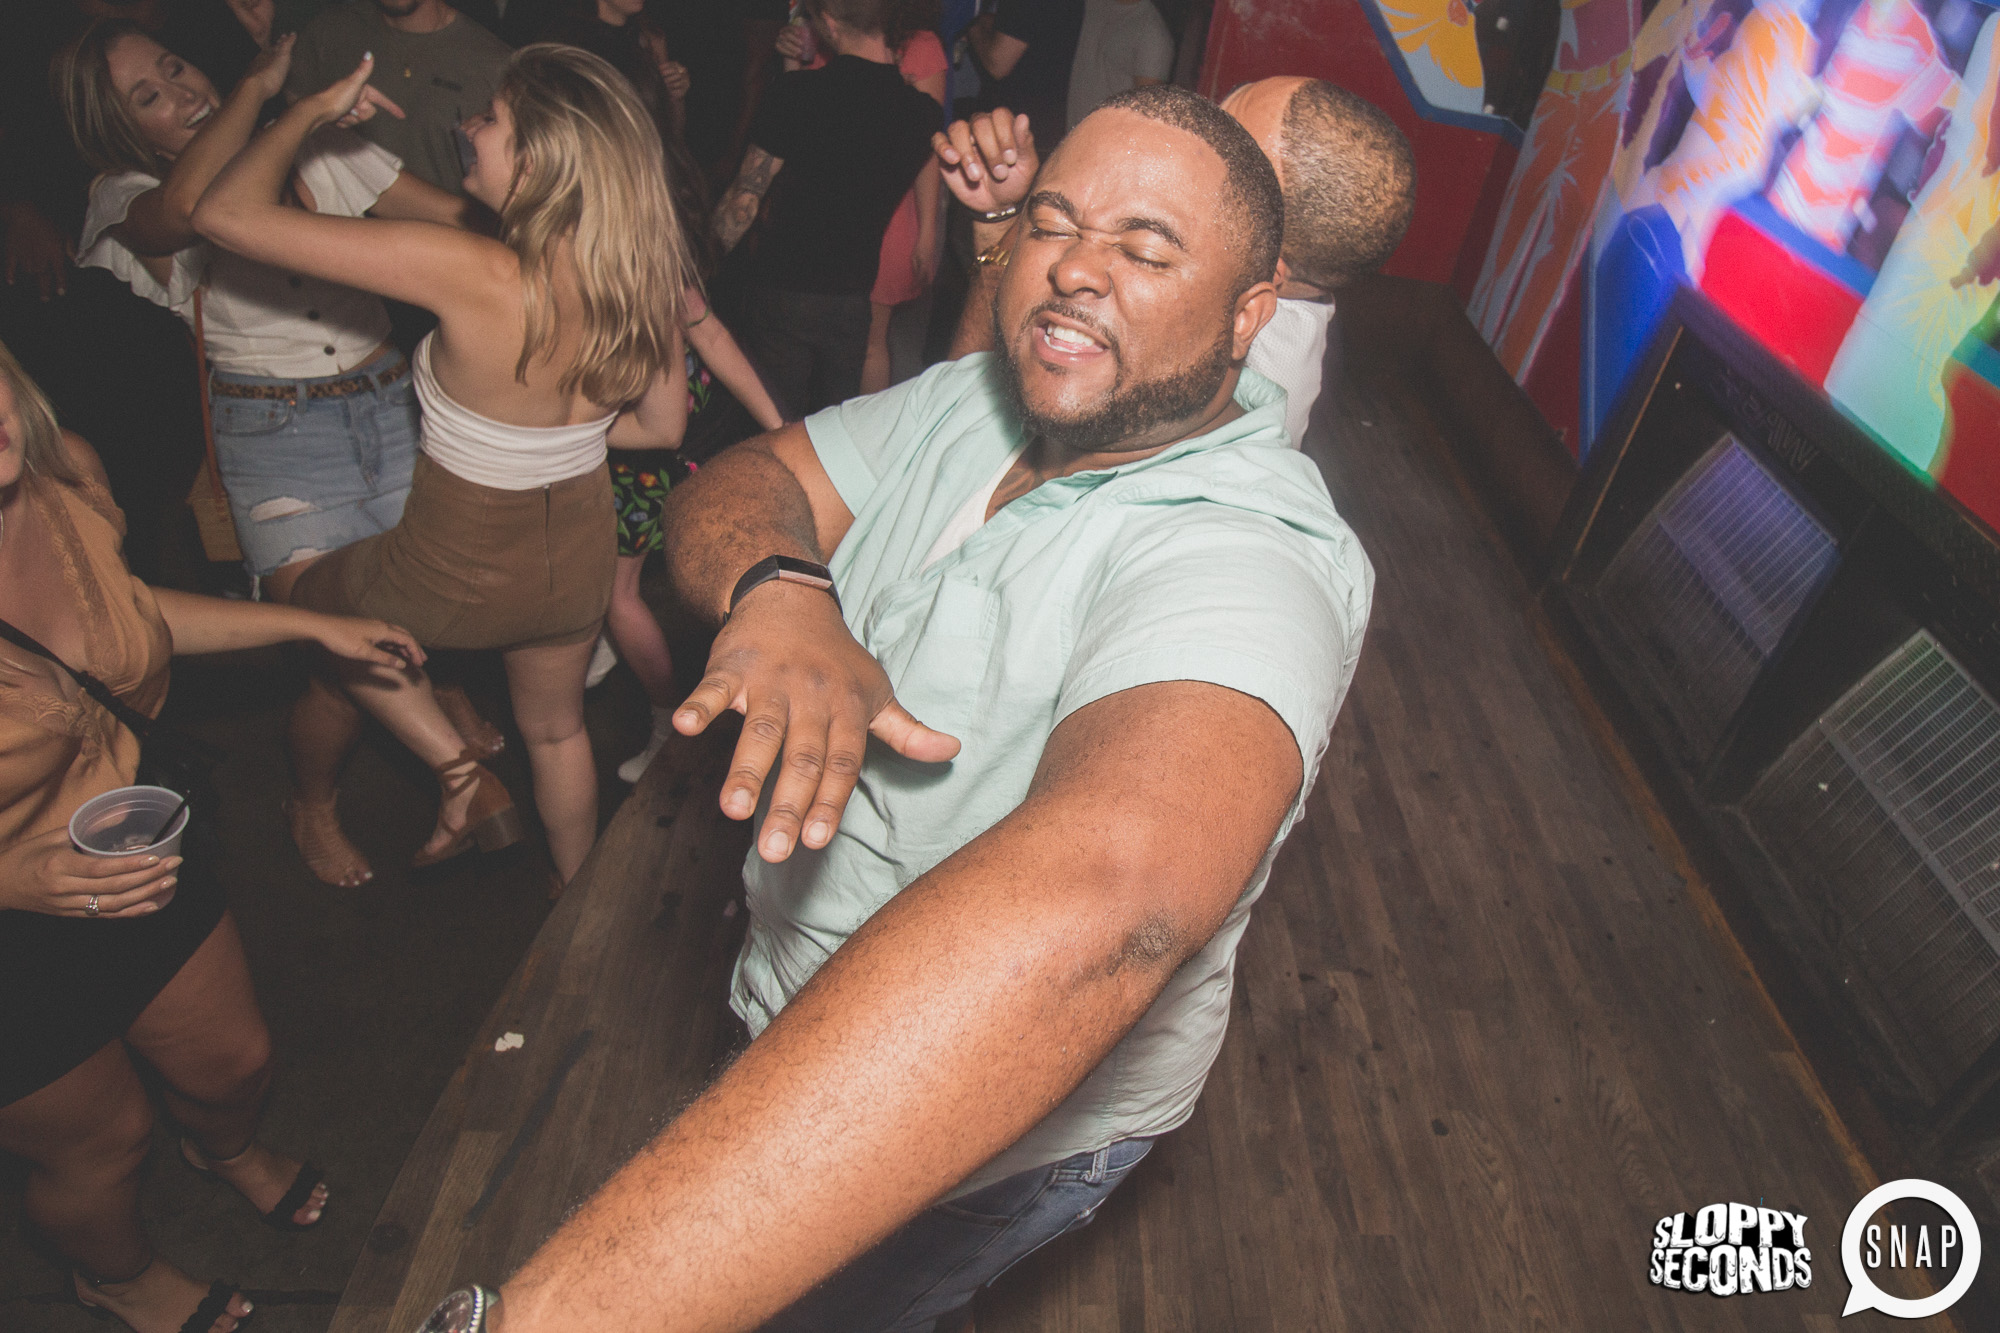 Sloppy Seconds 7.13.19 Oh Snap Kid Colin Boddy Atlanta-5.jpg